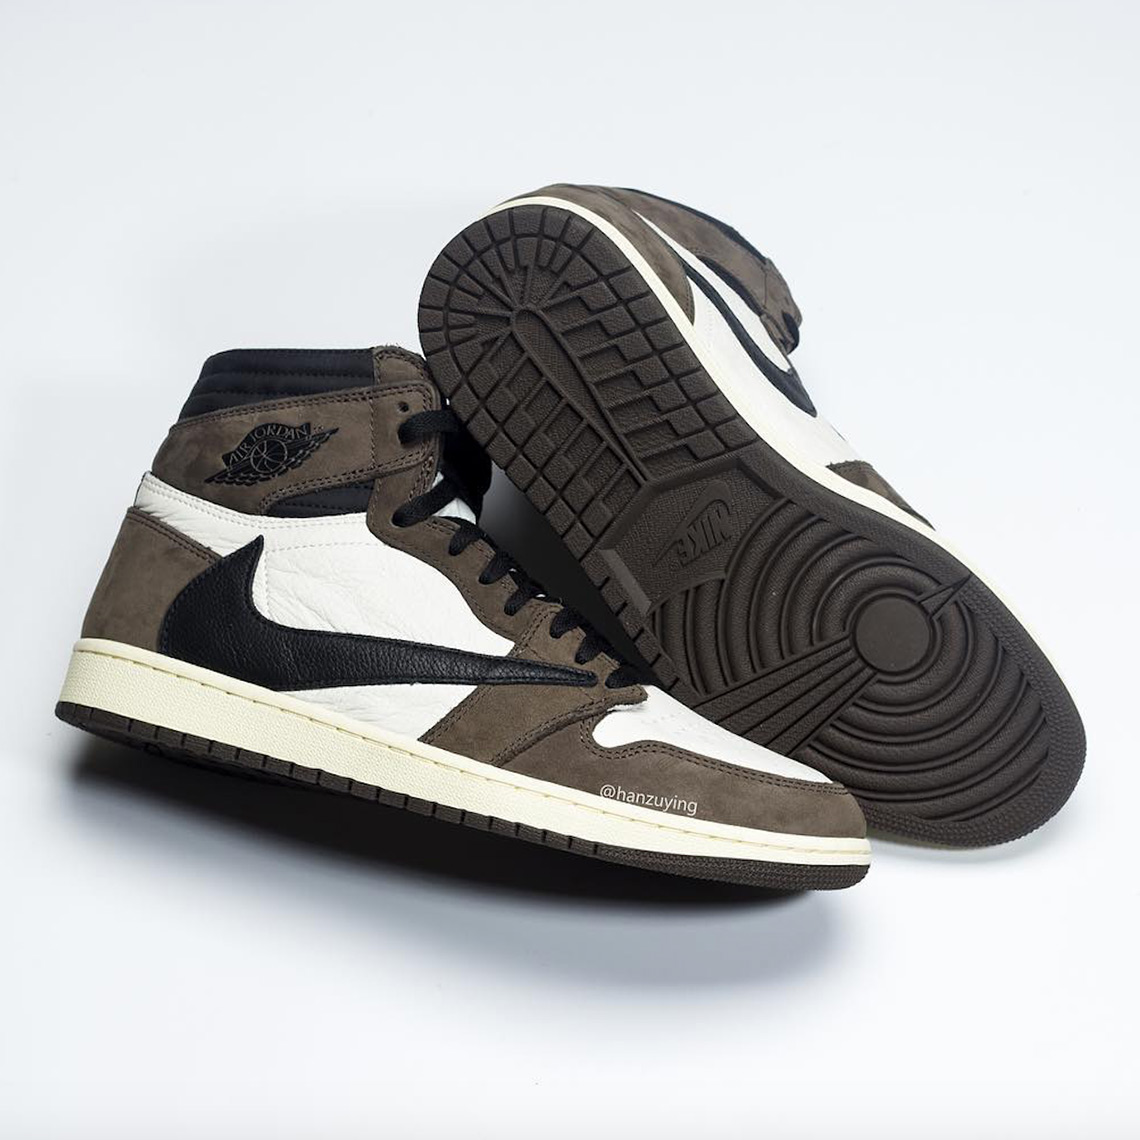 new concept 3e8bb 0f284 ... Travis Scott x Air Jordan 1